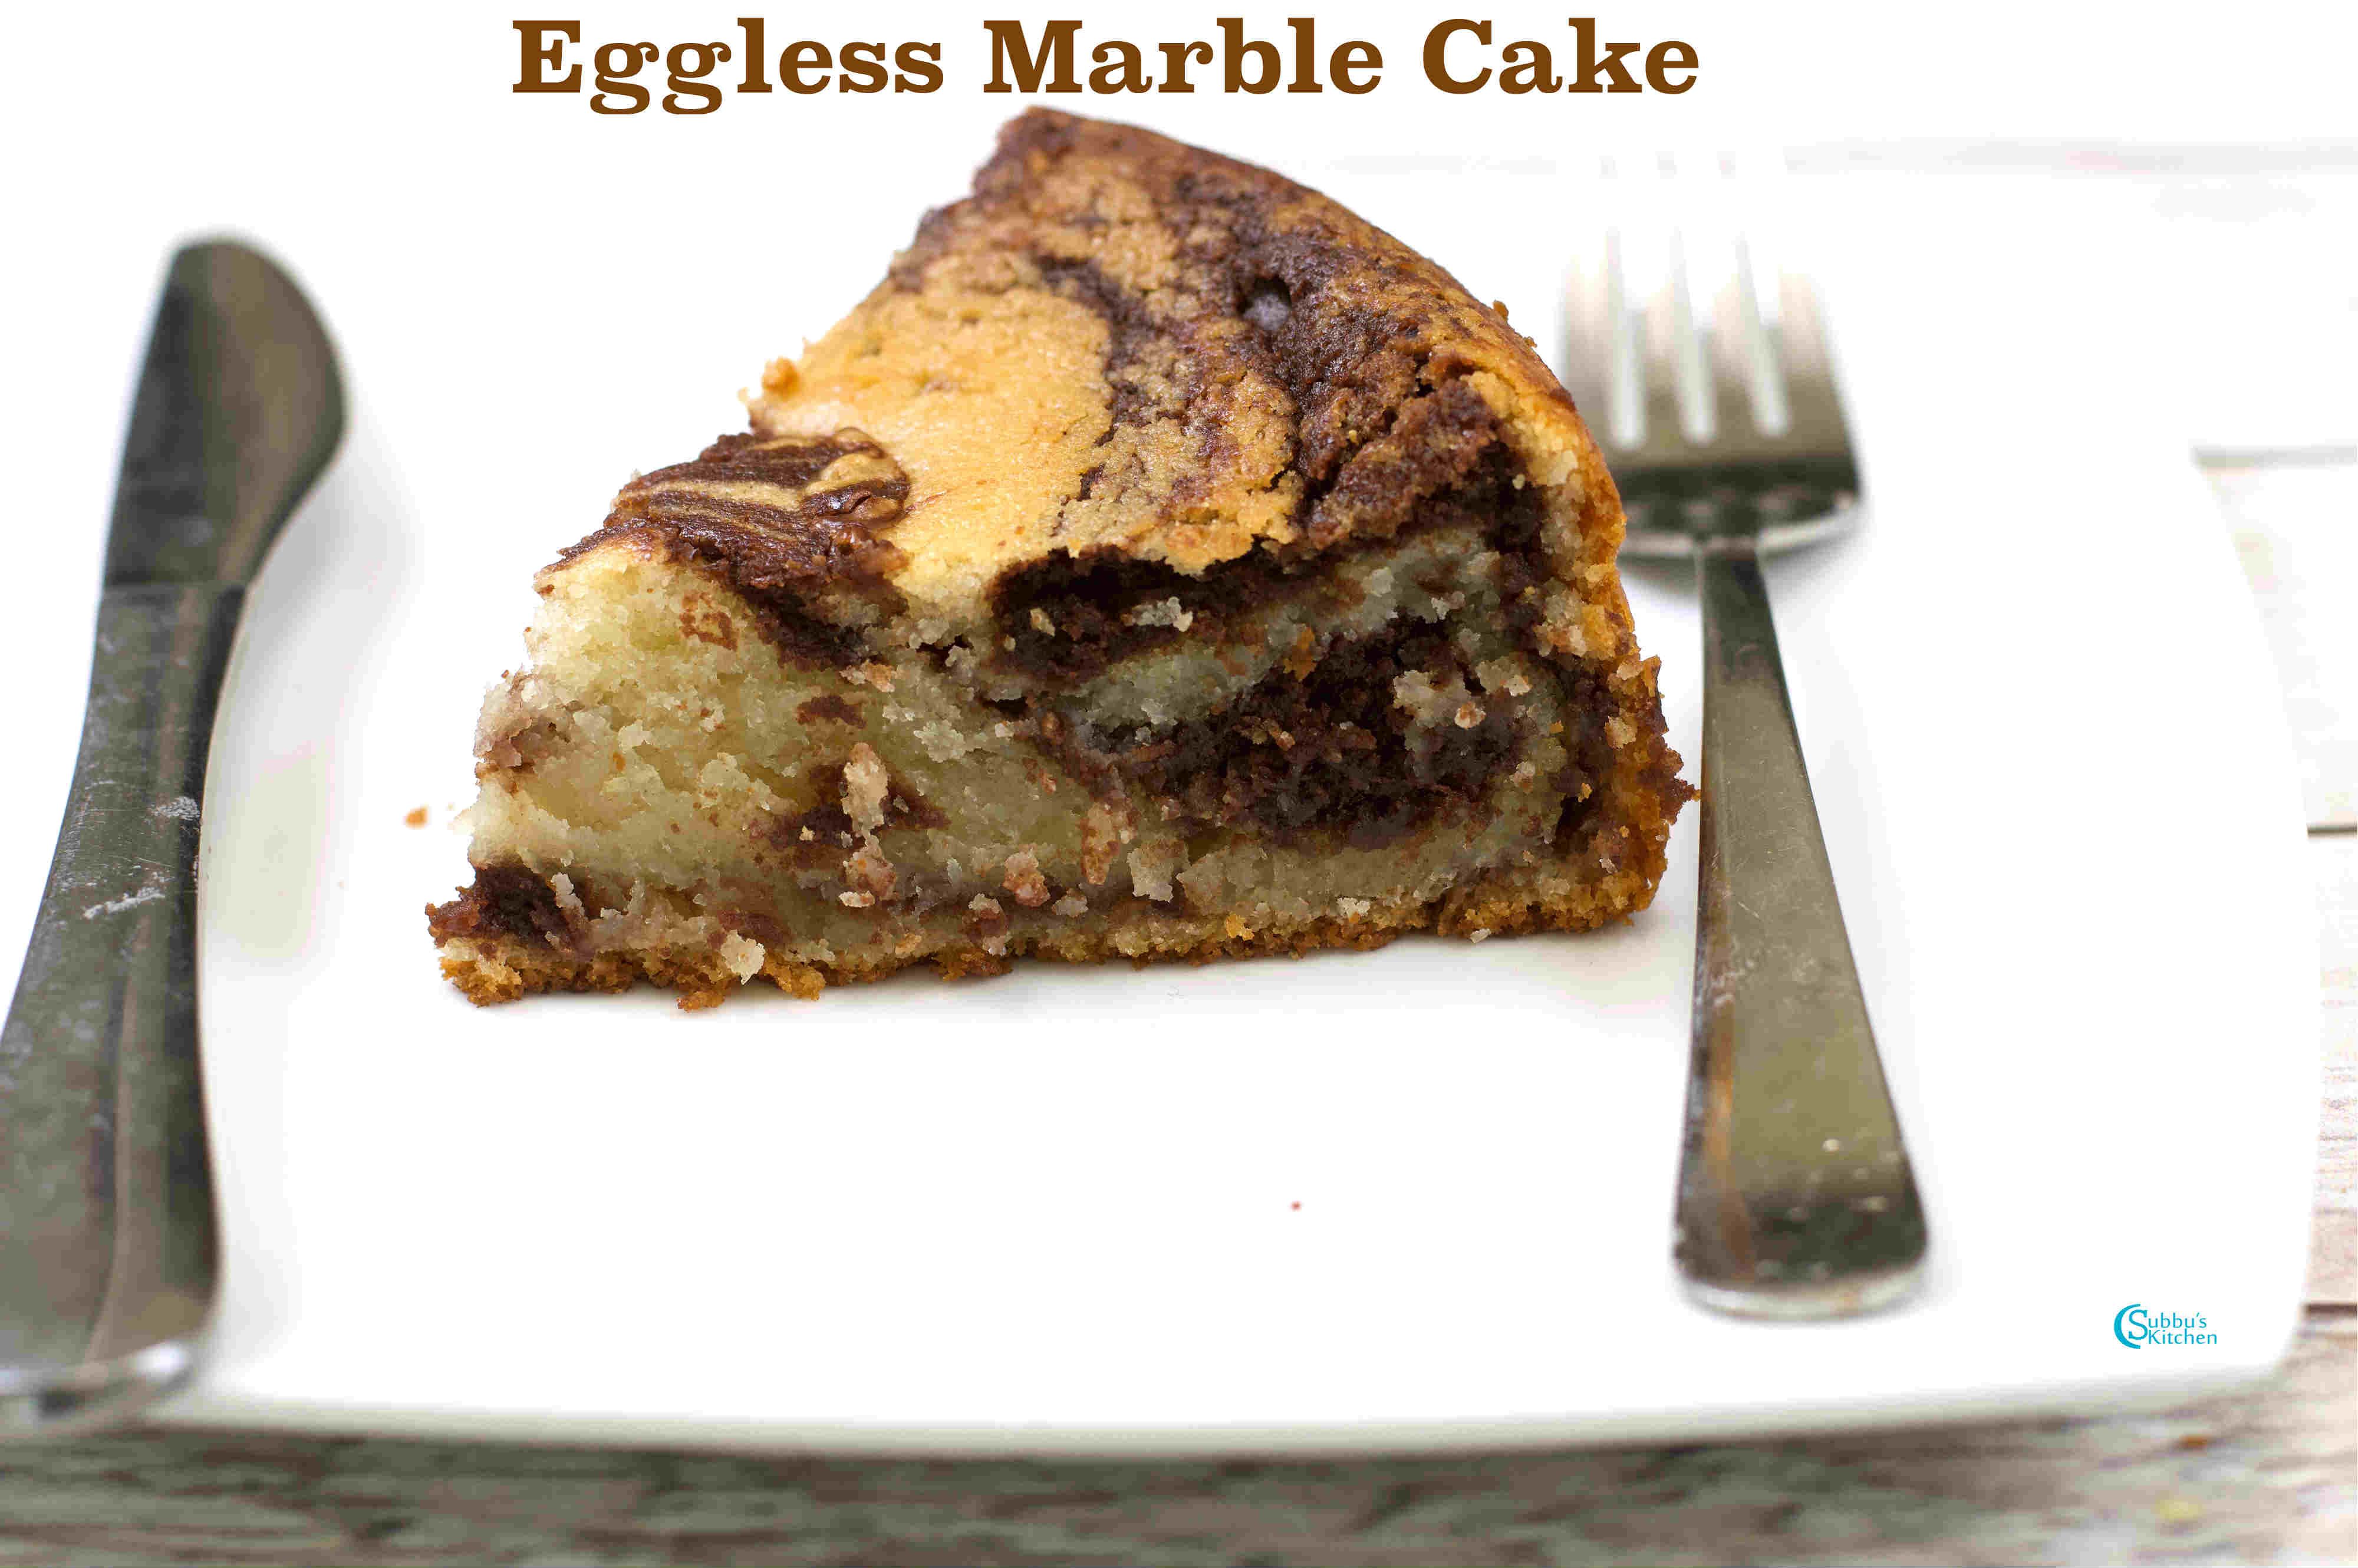 Eggless Vanilla Cake Recipes In Pressure Cooker: Eggless Marble Cake In Pressure Cooker